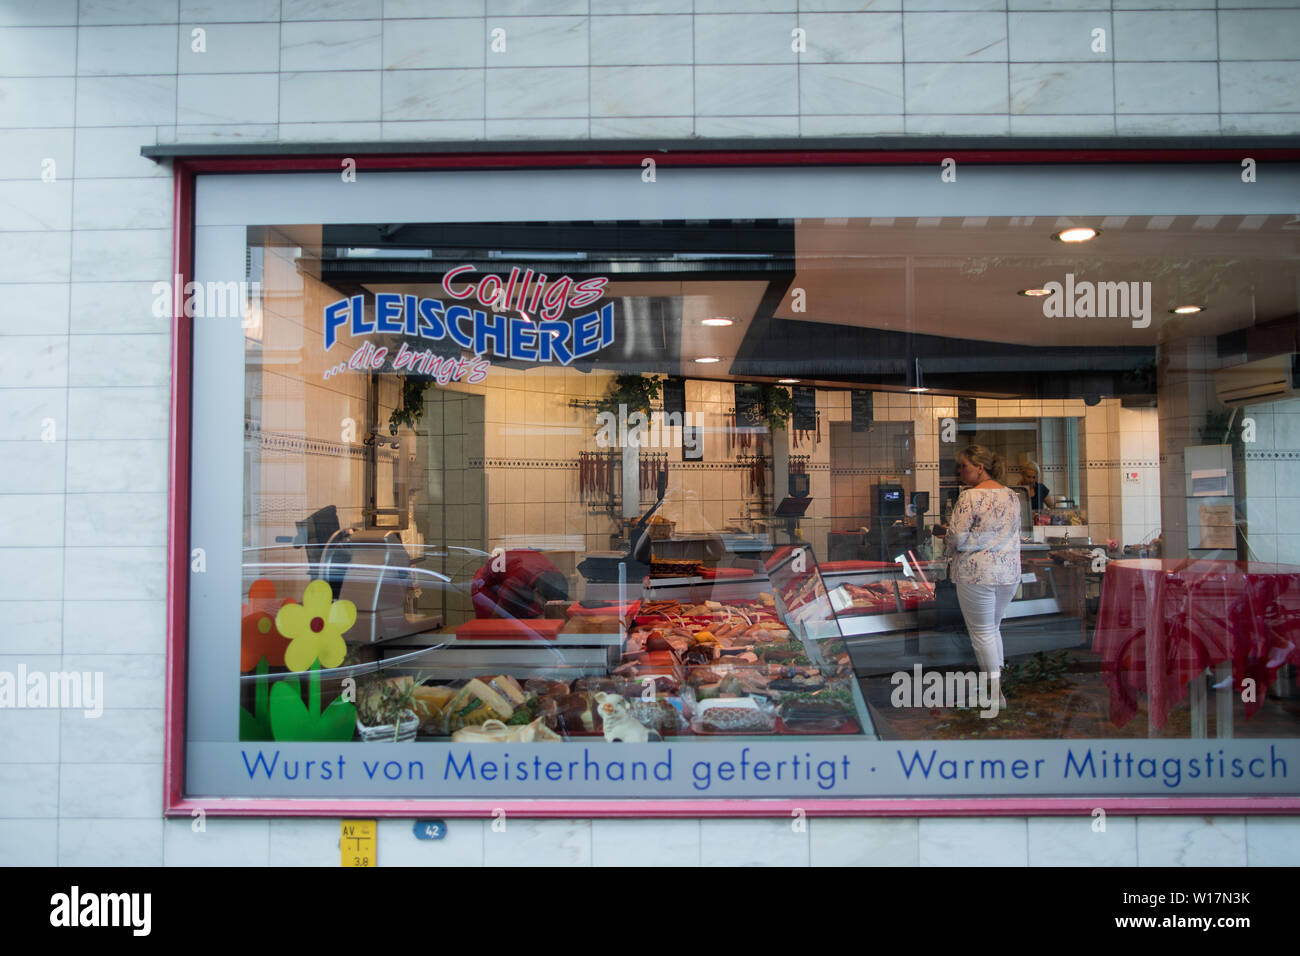 Essen, Germany  28th June, 2019  View of the Colligs butcher